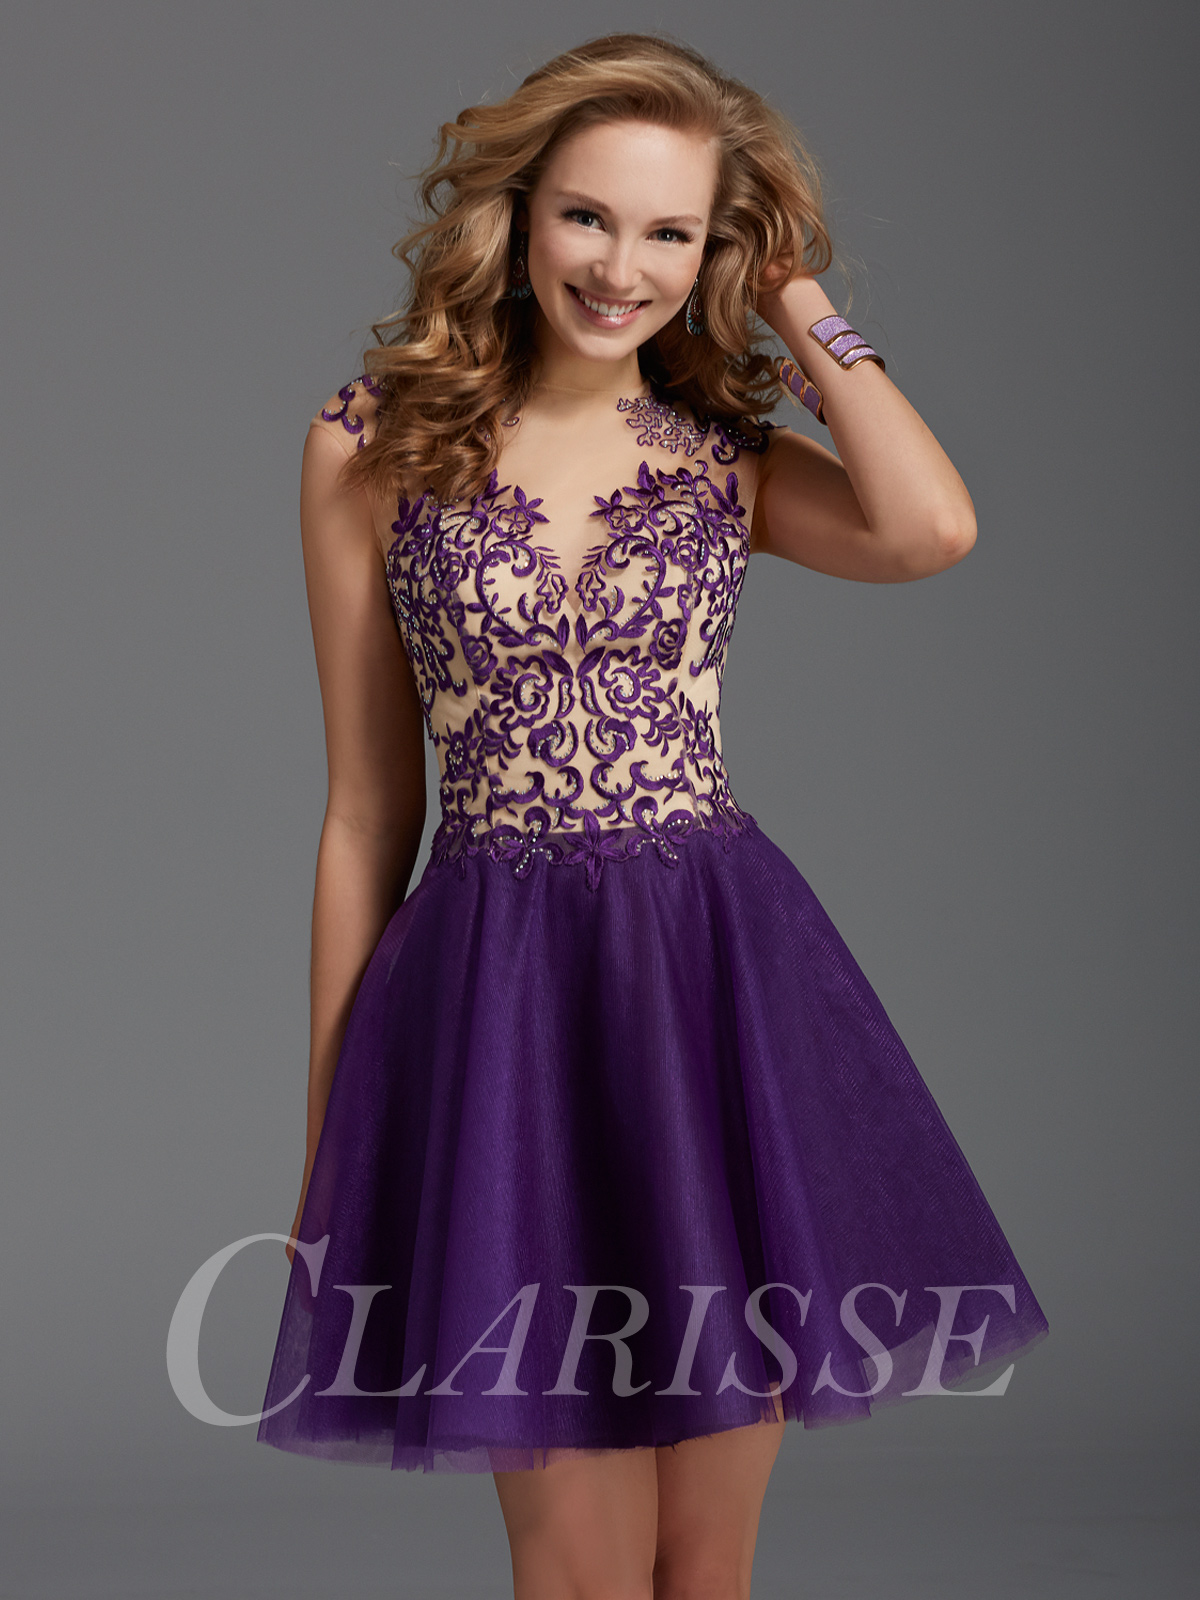 Clarisse Short Formal Dress 2918 | Promgirl.net